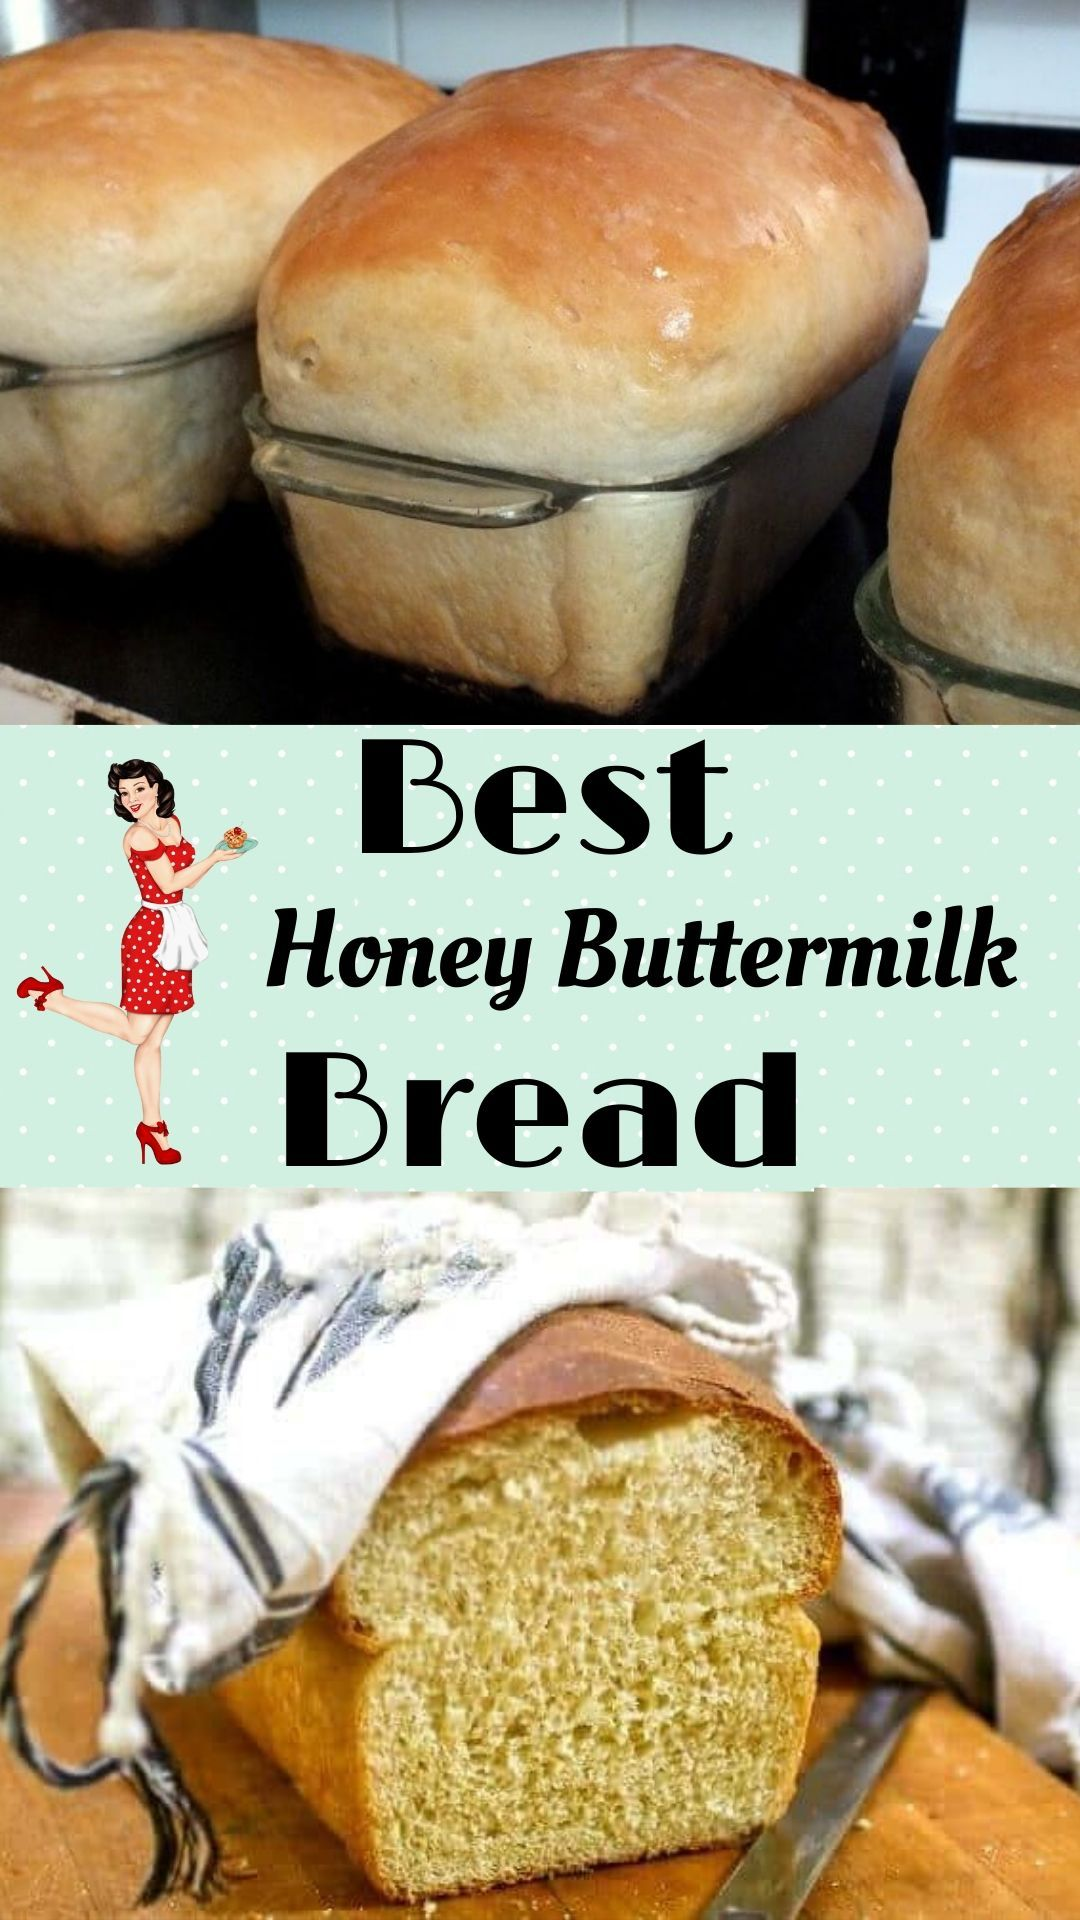 Honey Buttermilk Bread Recipe Buttermilk Bread Bread Recipes Homemade Homemade Buttermilk